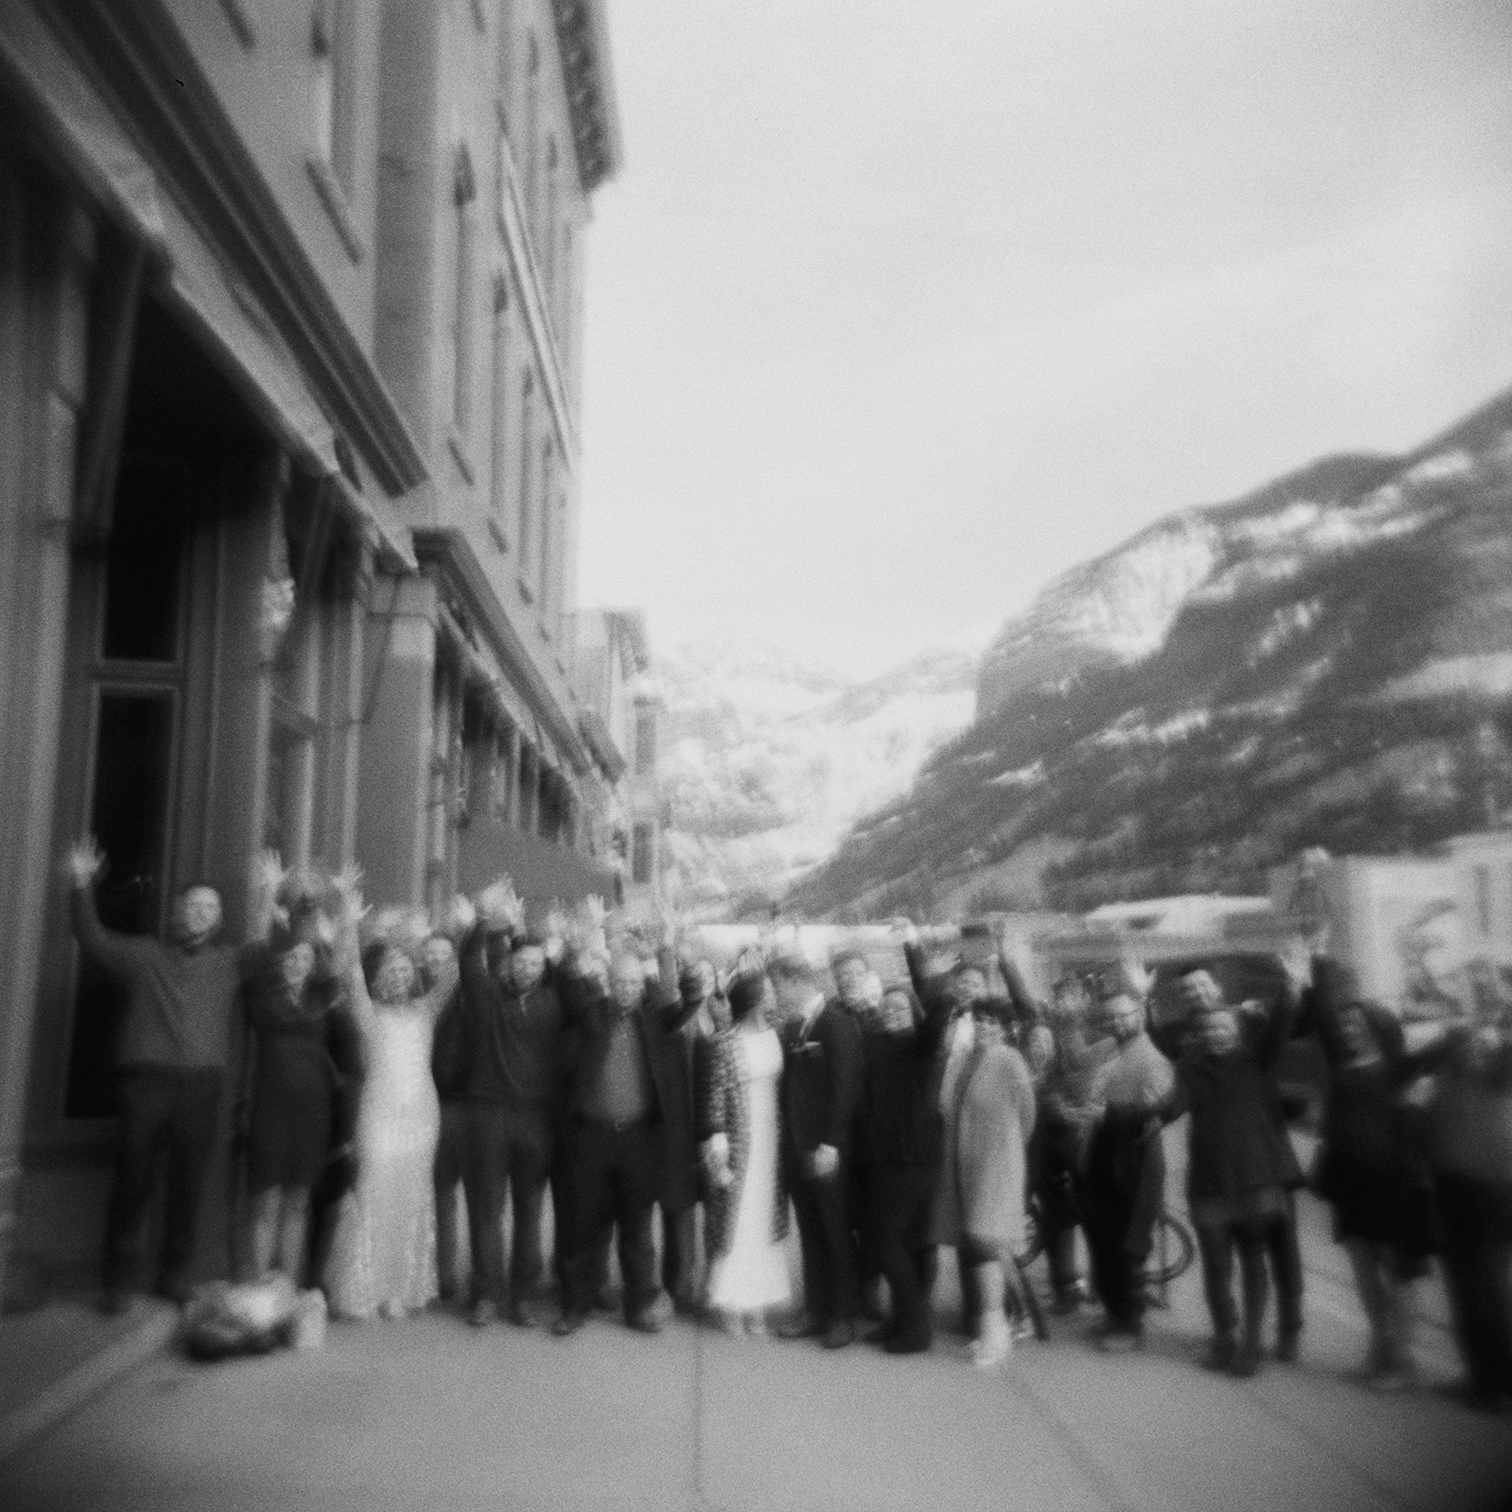 Telluride Wedding, Colorado Destination Wedding, Colorado Photographer, Colorado Wedding Photography, Film Photography